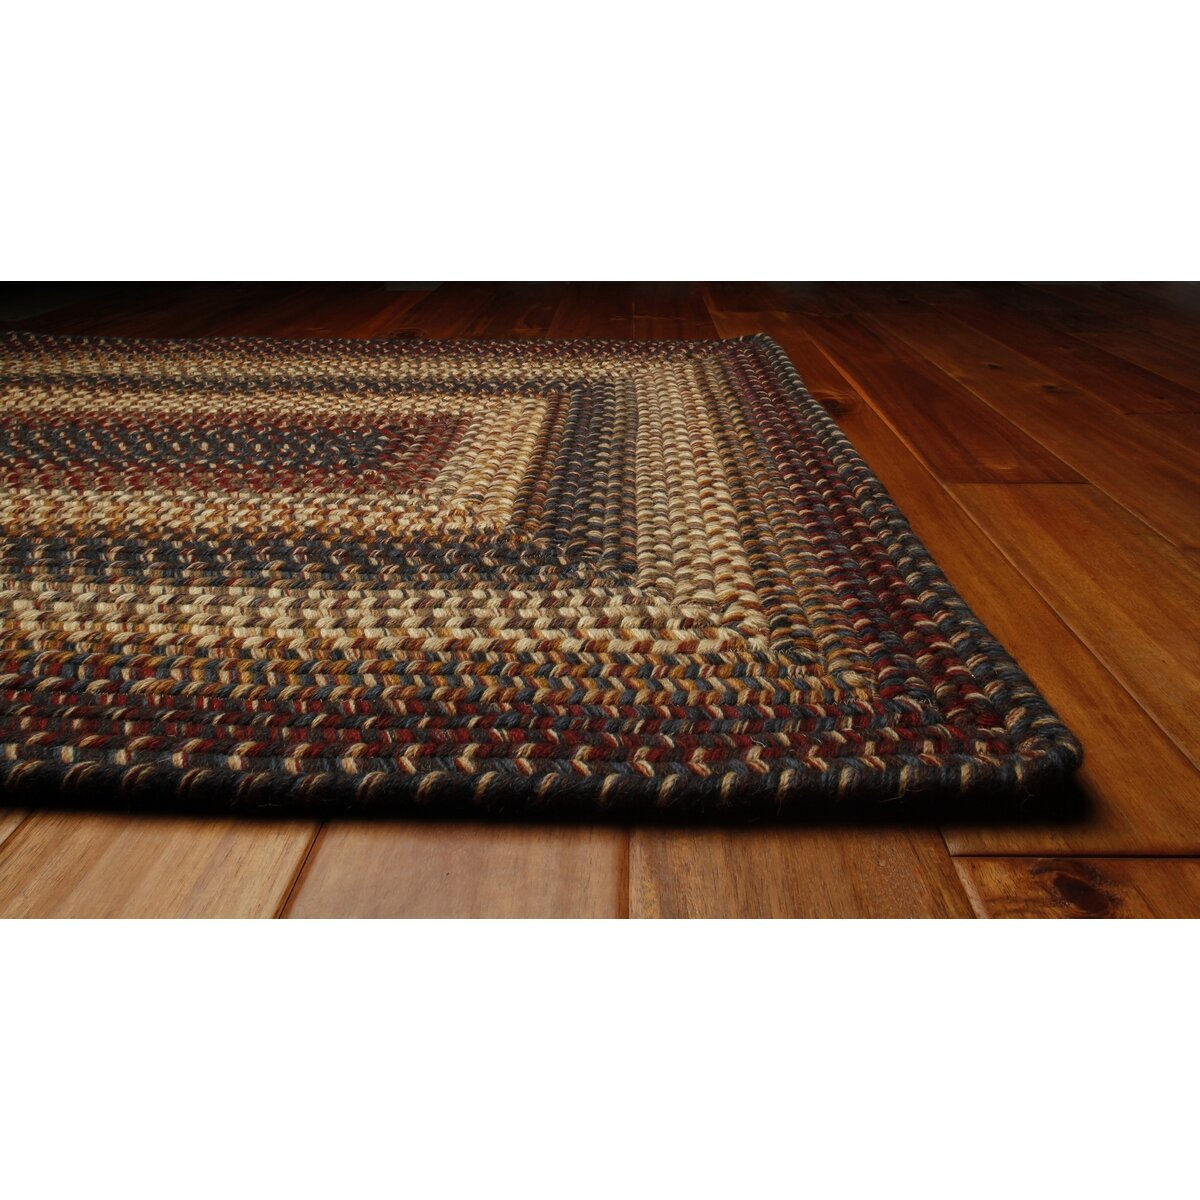 Homespice decor wool cambridge area rug reviews wayfair - Rugs and home decor decor ...